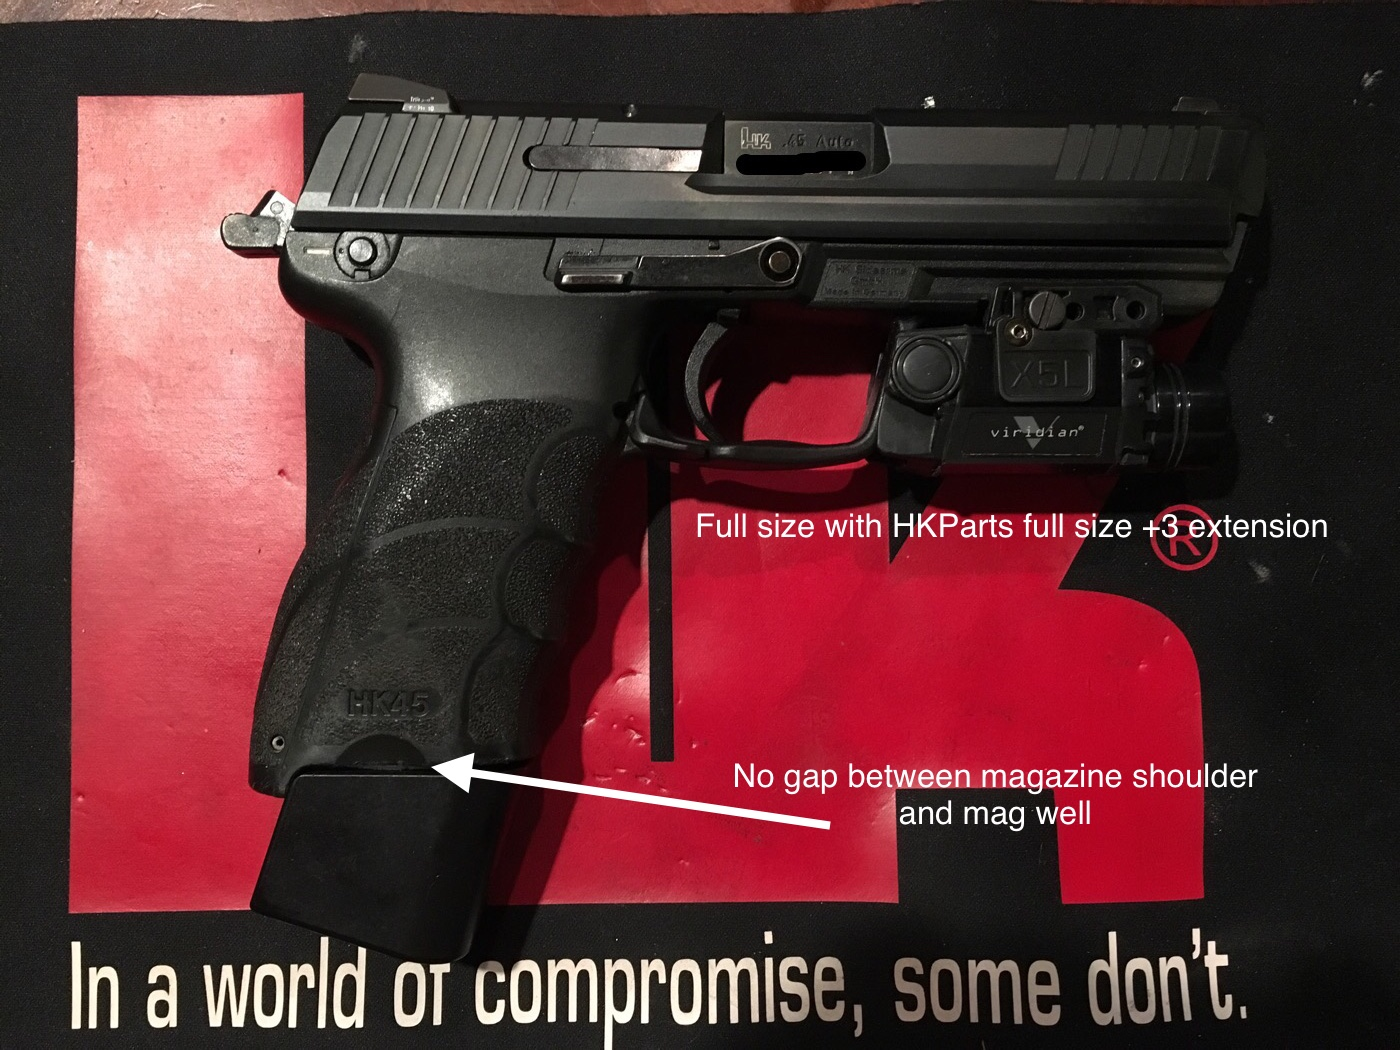 My experience with HK45/HK45C magazine extensions-bace7ea5-42f4-49af-879a-6b9a648aa487.jpeg